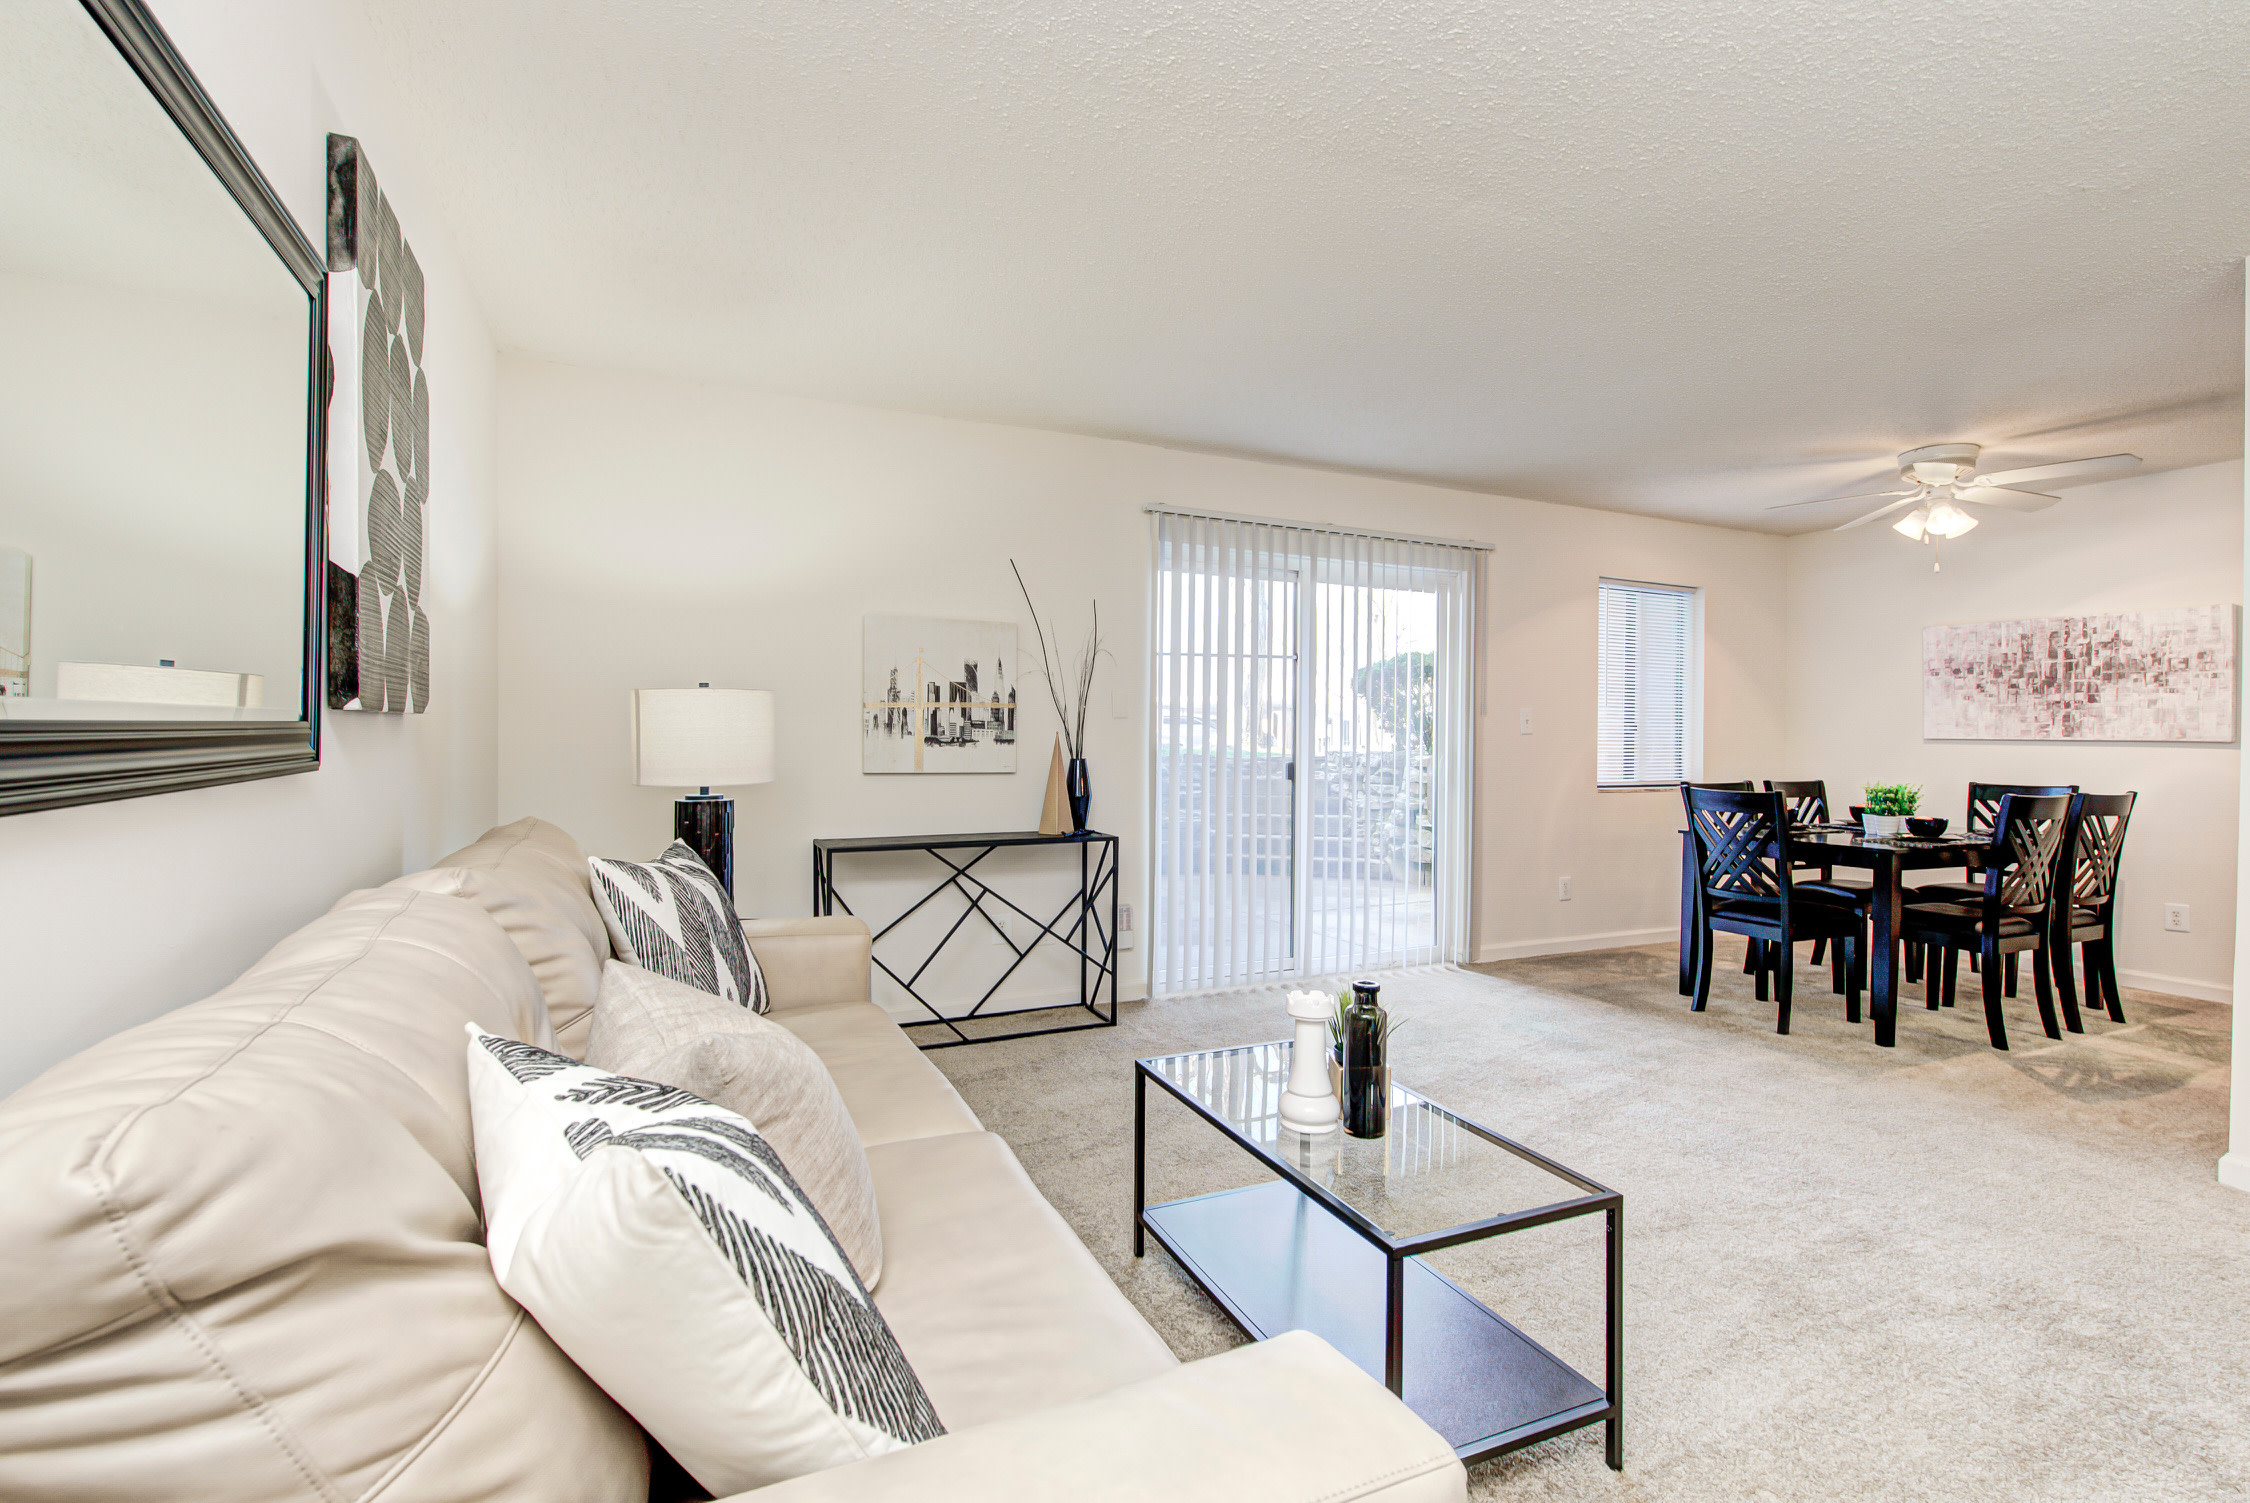 20 Best Apartments For Rent In Fishers, IN (with pictures)! - p. 3